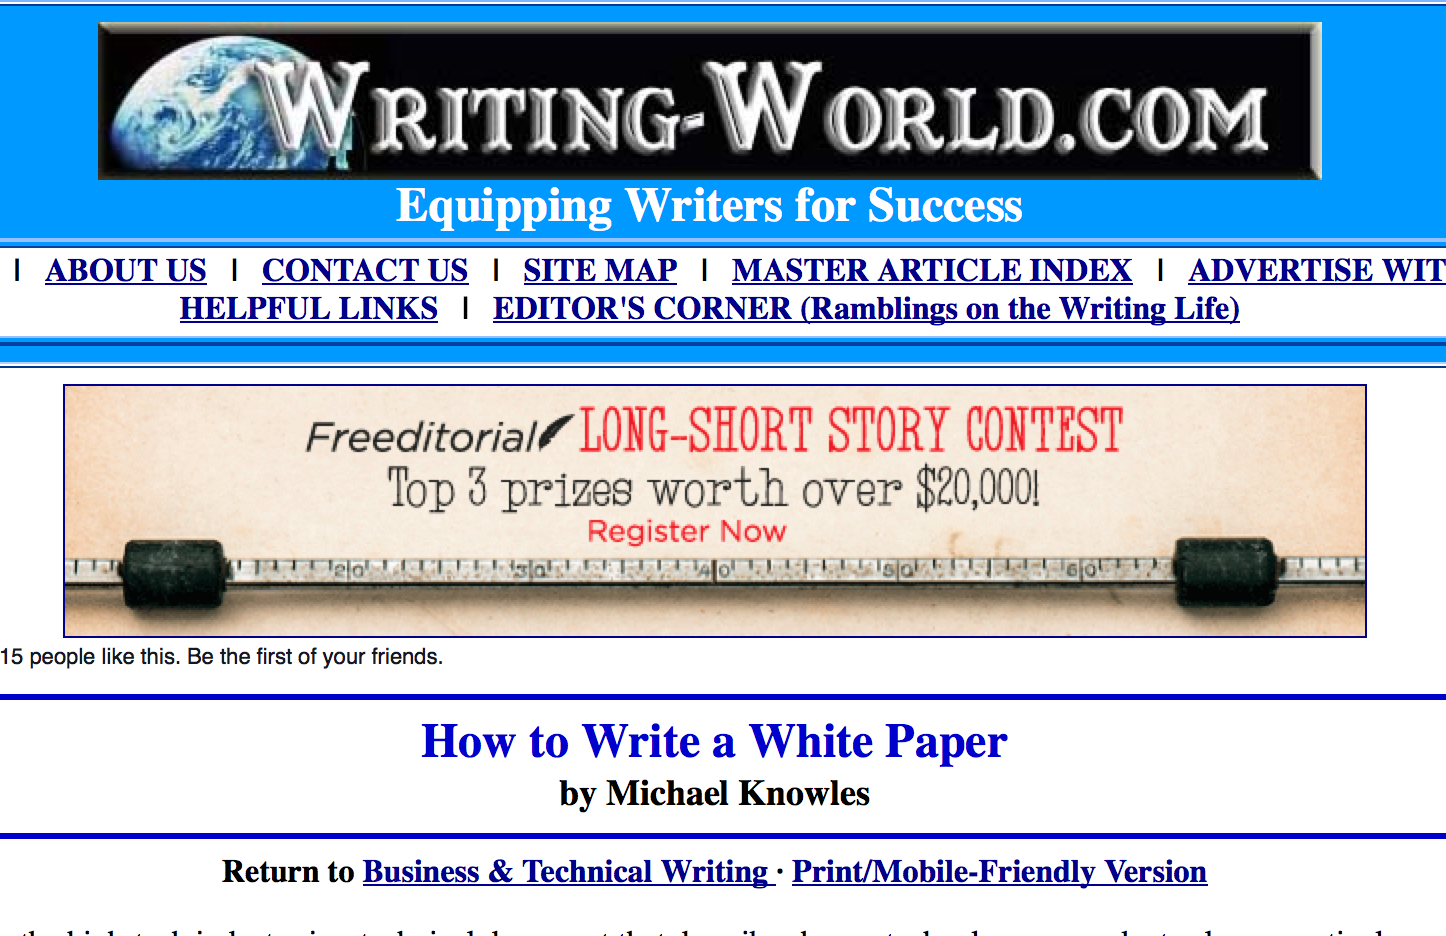 29 White Papers ideas  white paper, writing, business writing